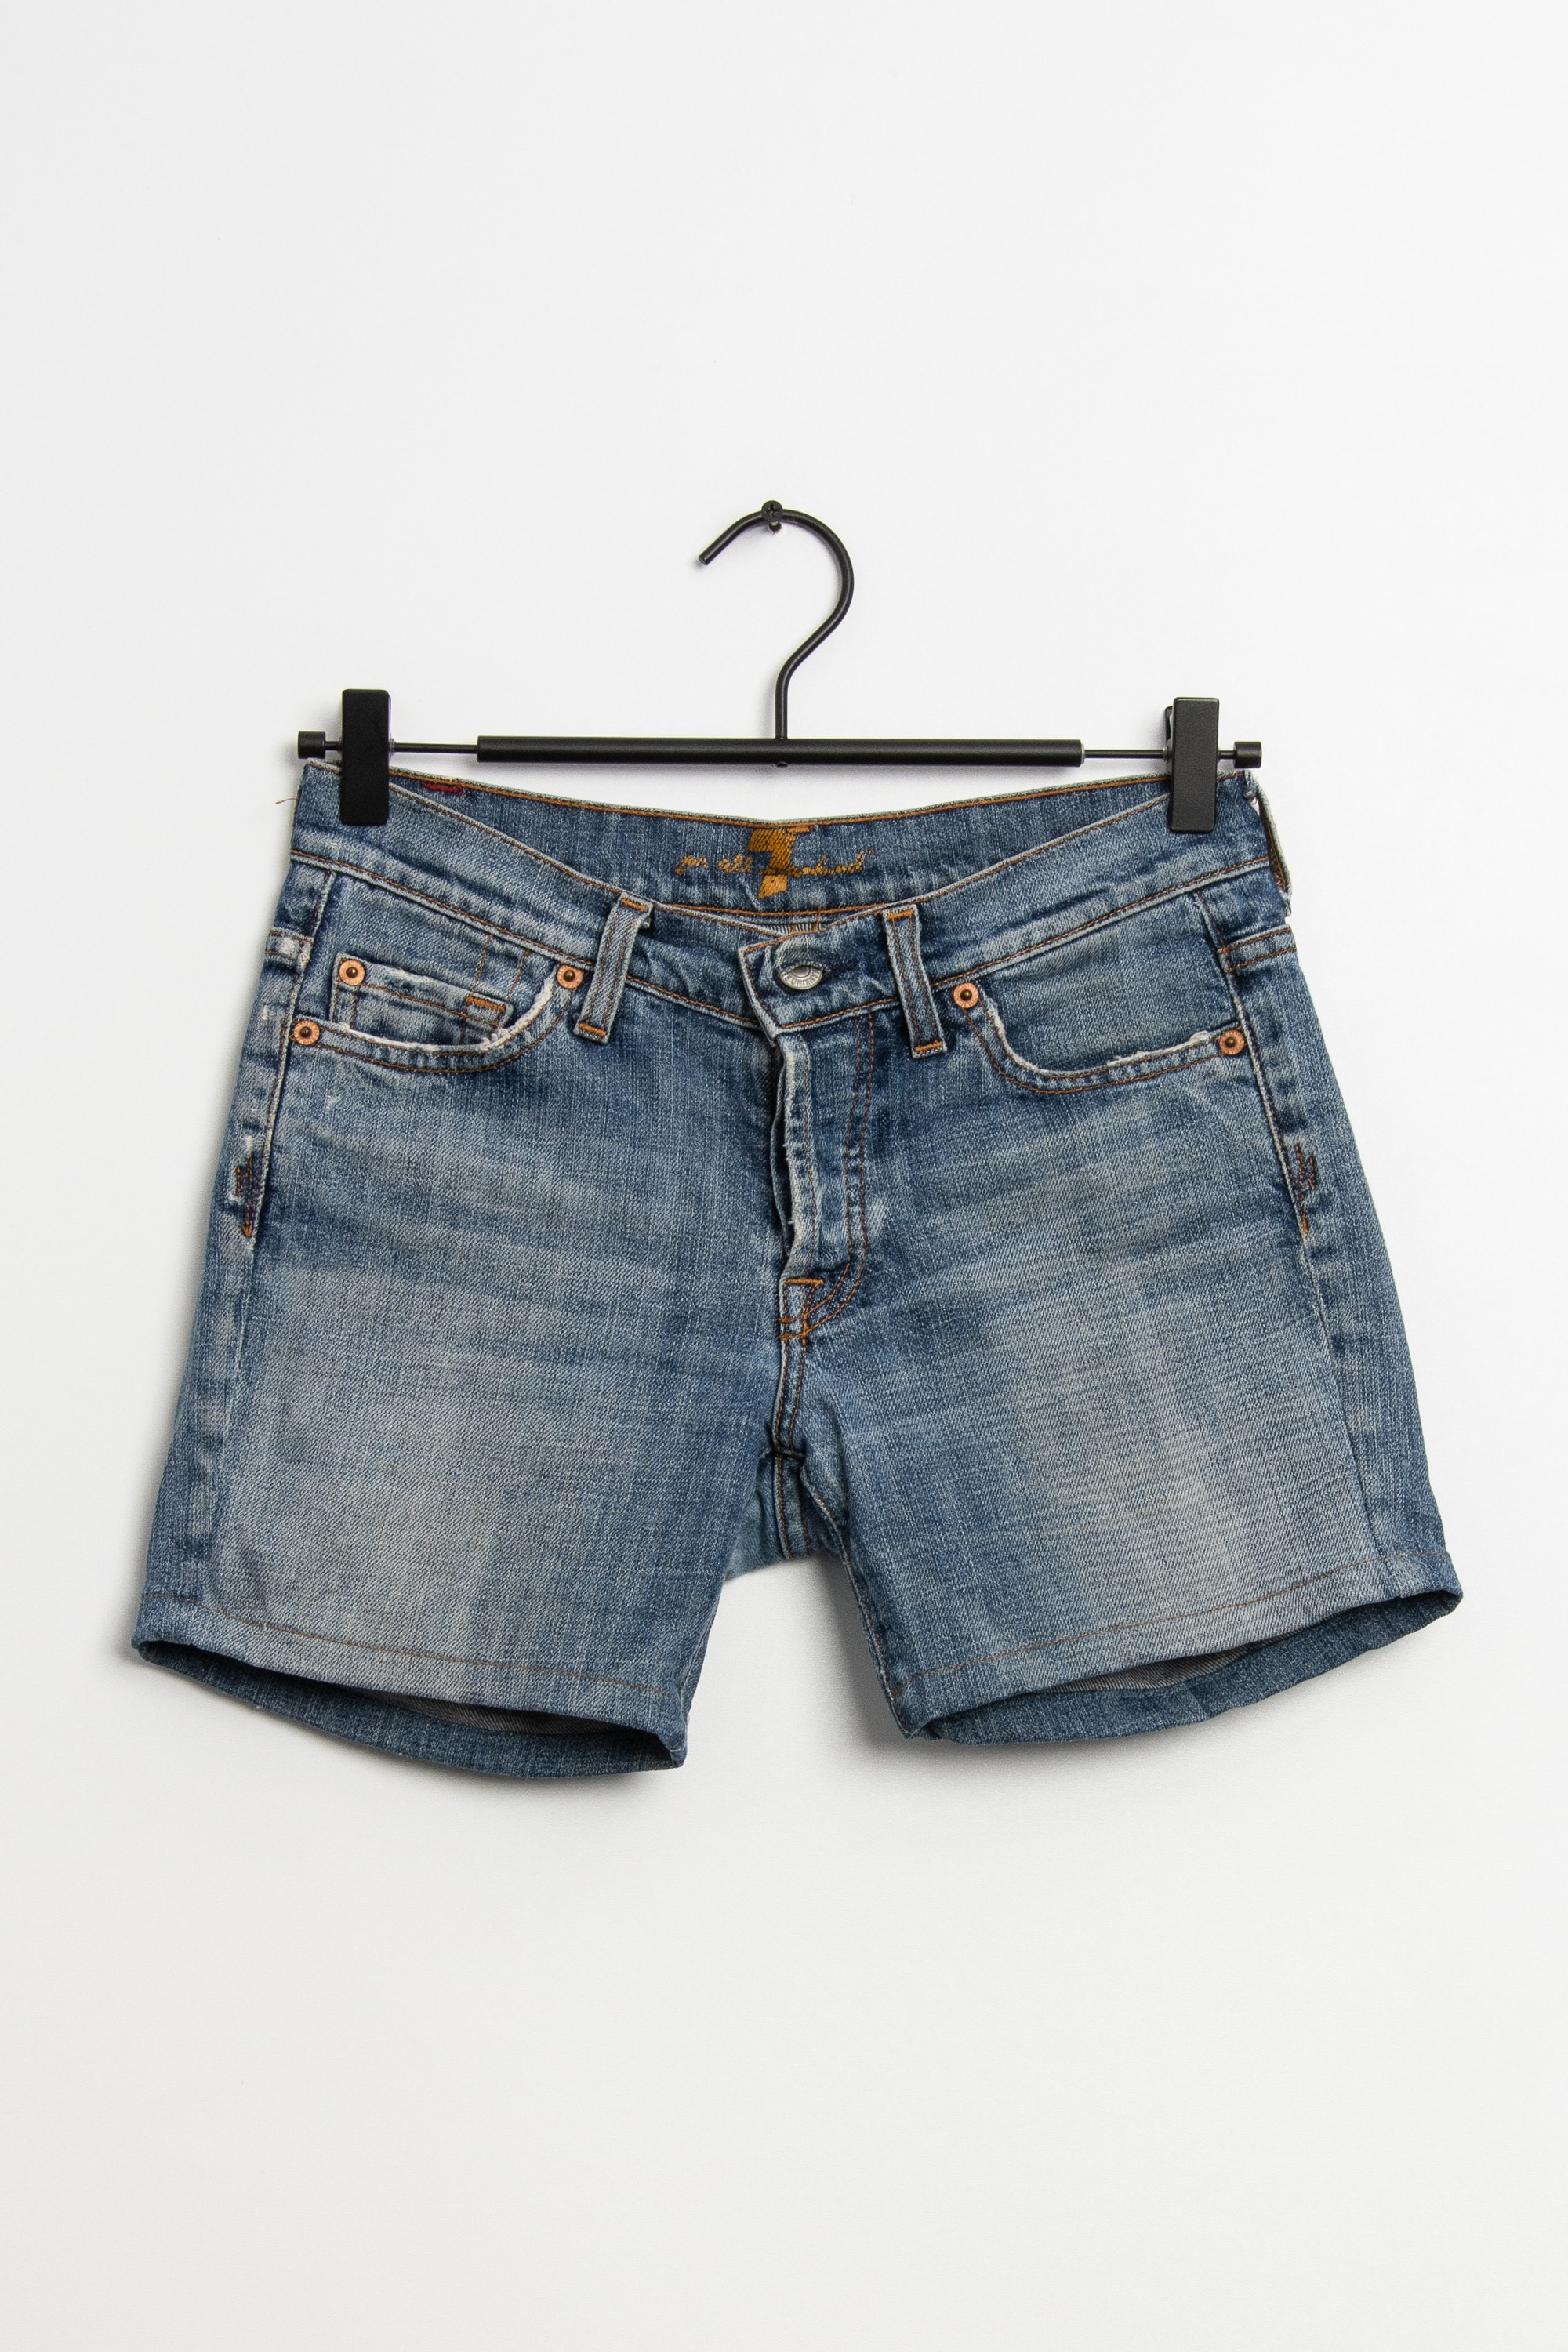 7 for all mankind Shorts Blau Gr.XS